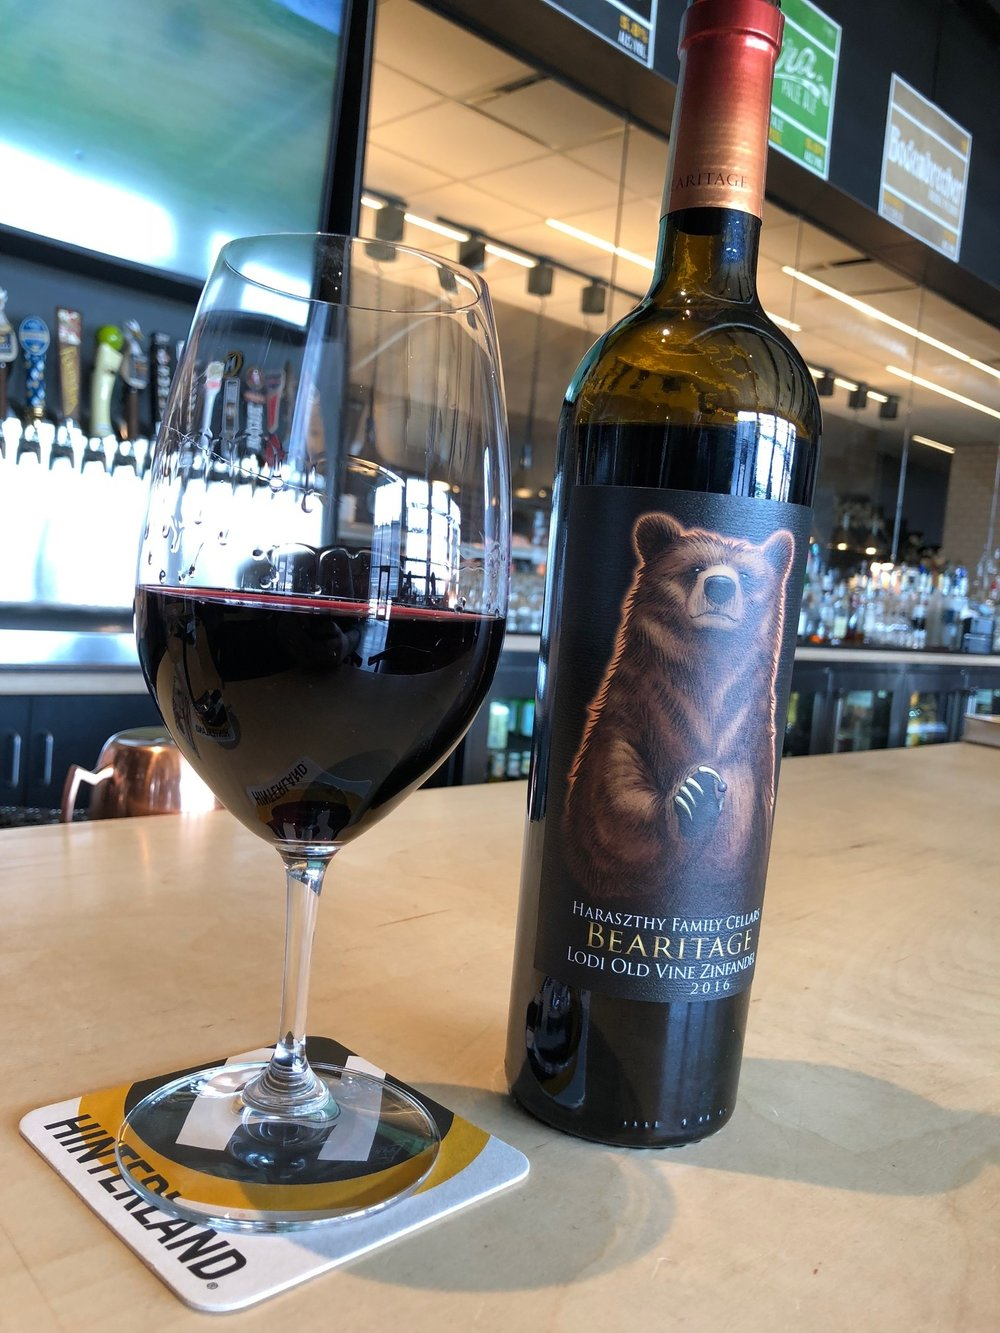 2016 Haraszthy Family Cellars Old Vine Zinfandel  Bearmitage  Lodi California : haraszthy family cellars  - Aeropaca.Org